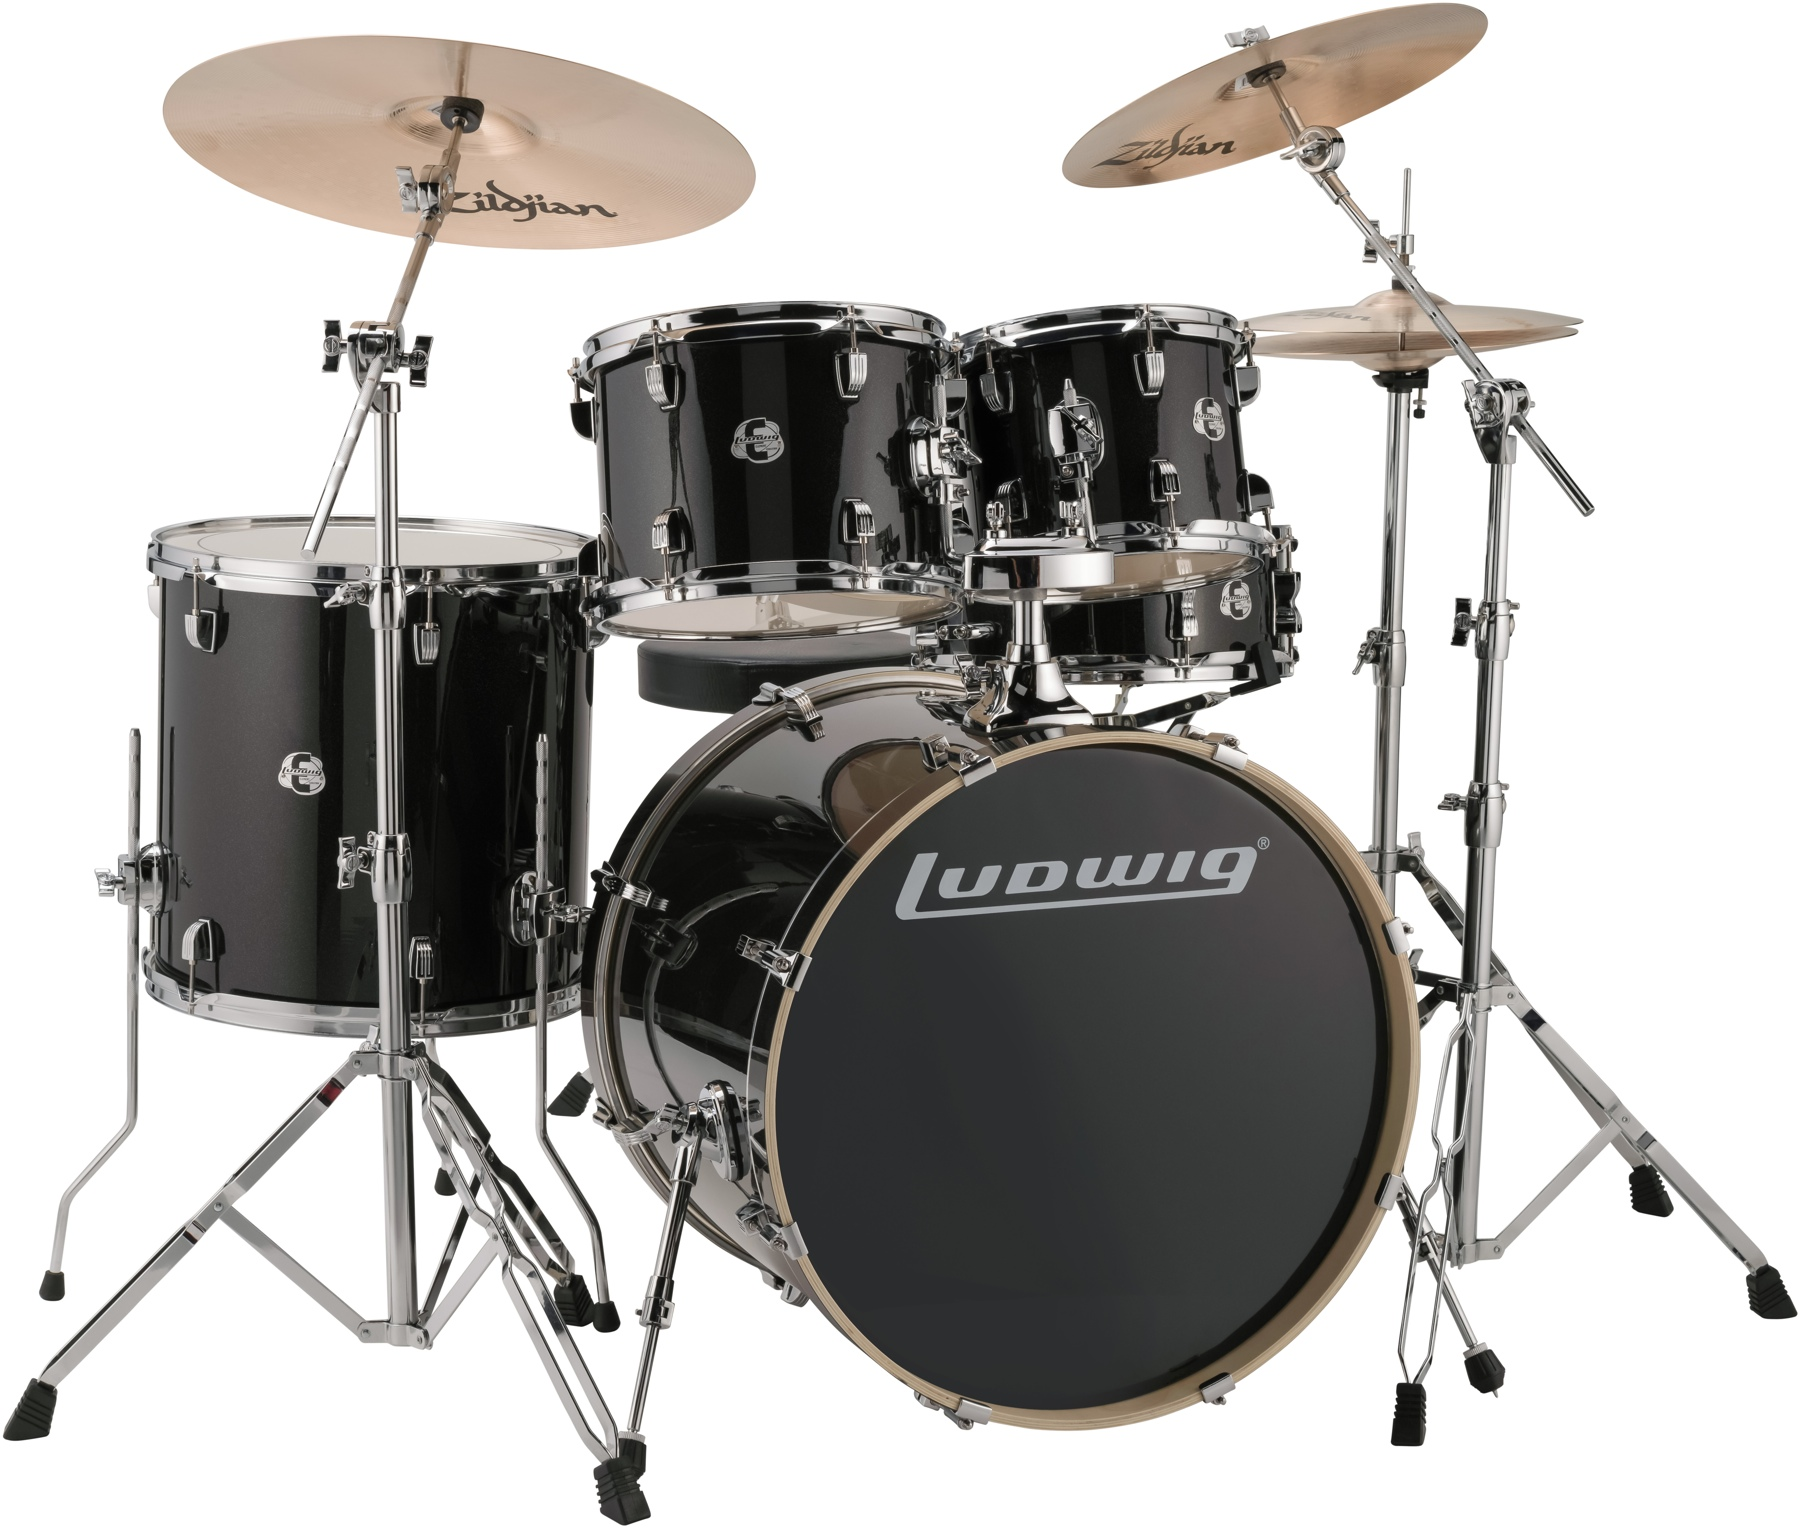 Ludwig LCEE22016 Element Evolution 5-piece Drum Set Black Sparkle Finish by Ludwig